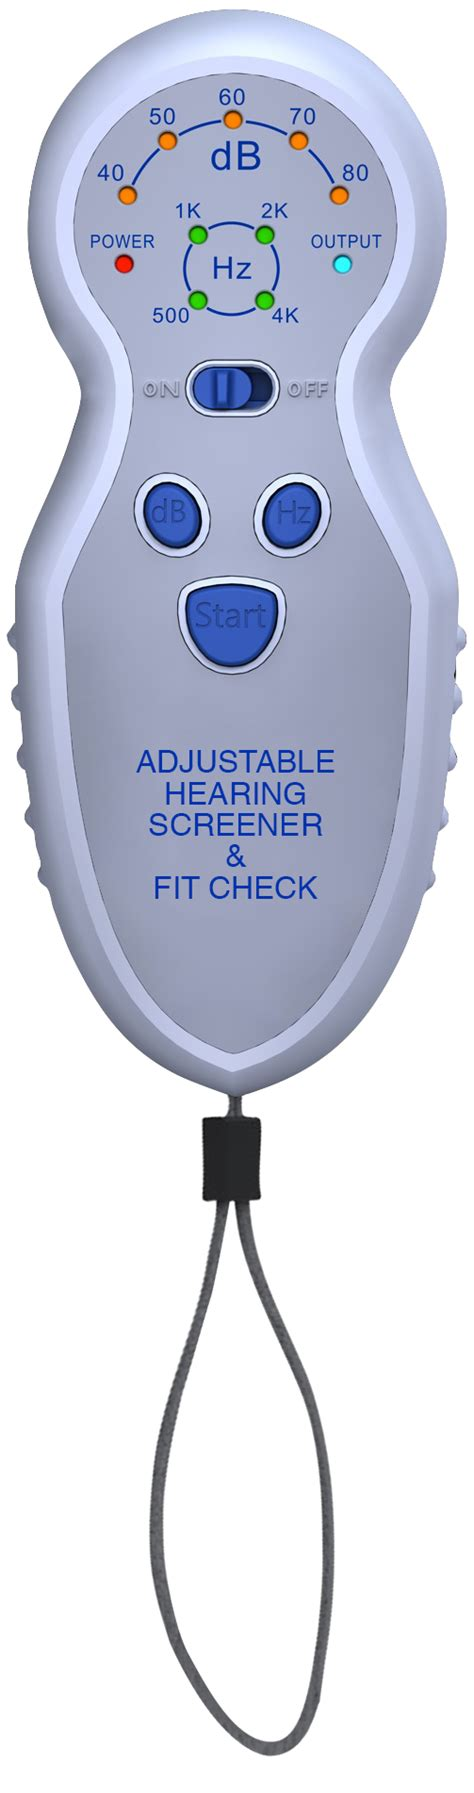 ear inc announces adjustable hearing screener fit check